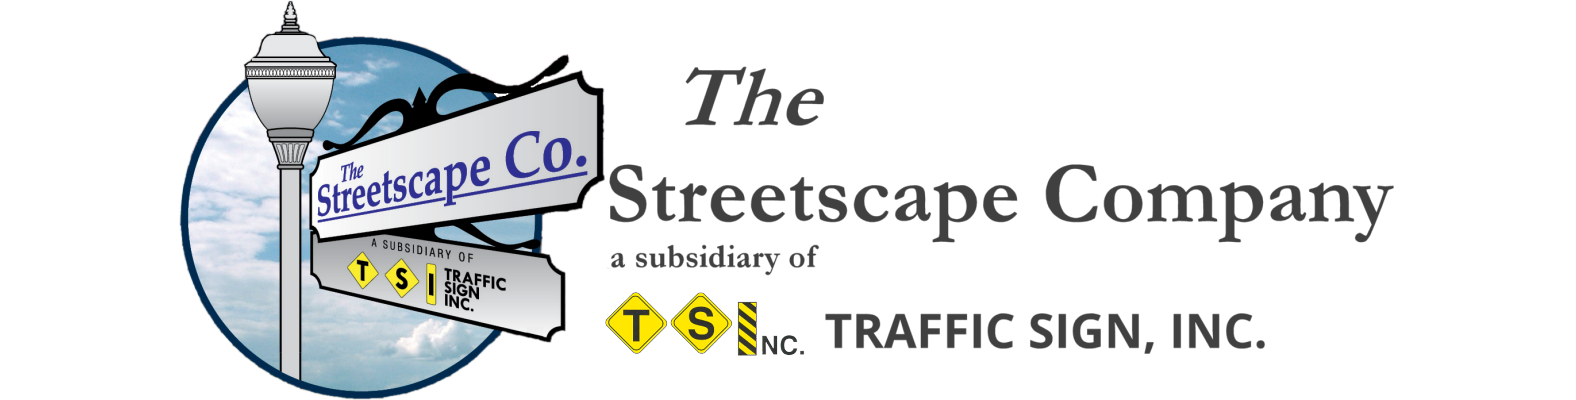 The Streetscape Company